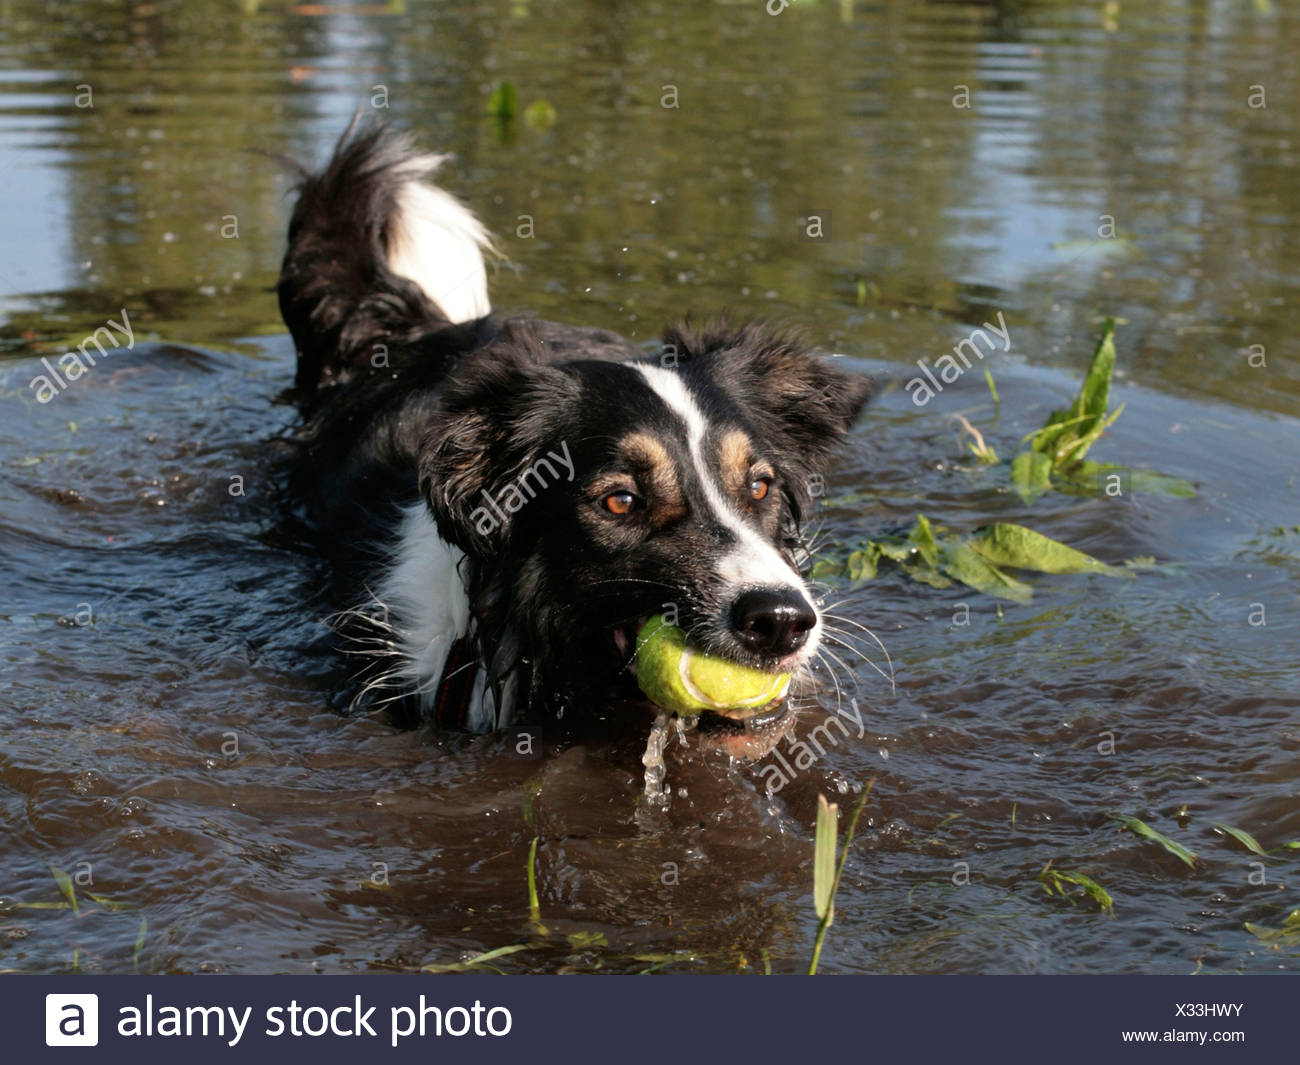 A collie in the water holding a ball in its mouth. Stock Photo